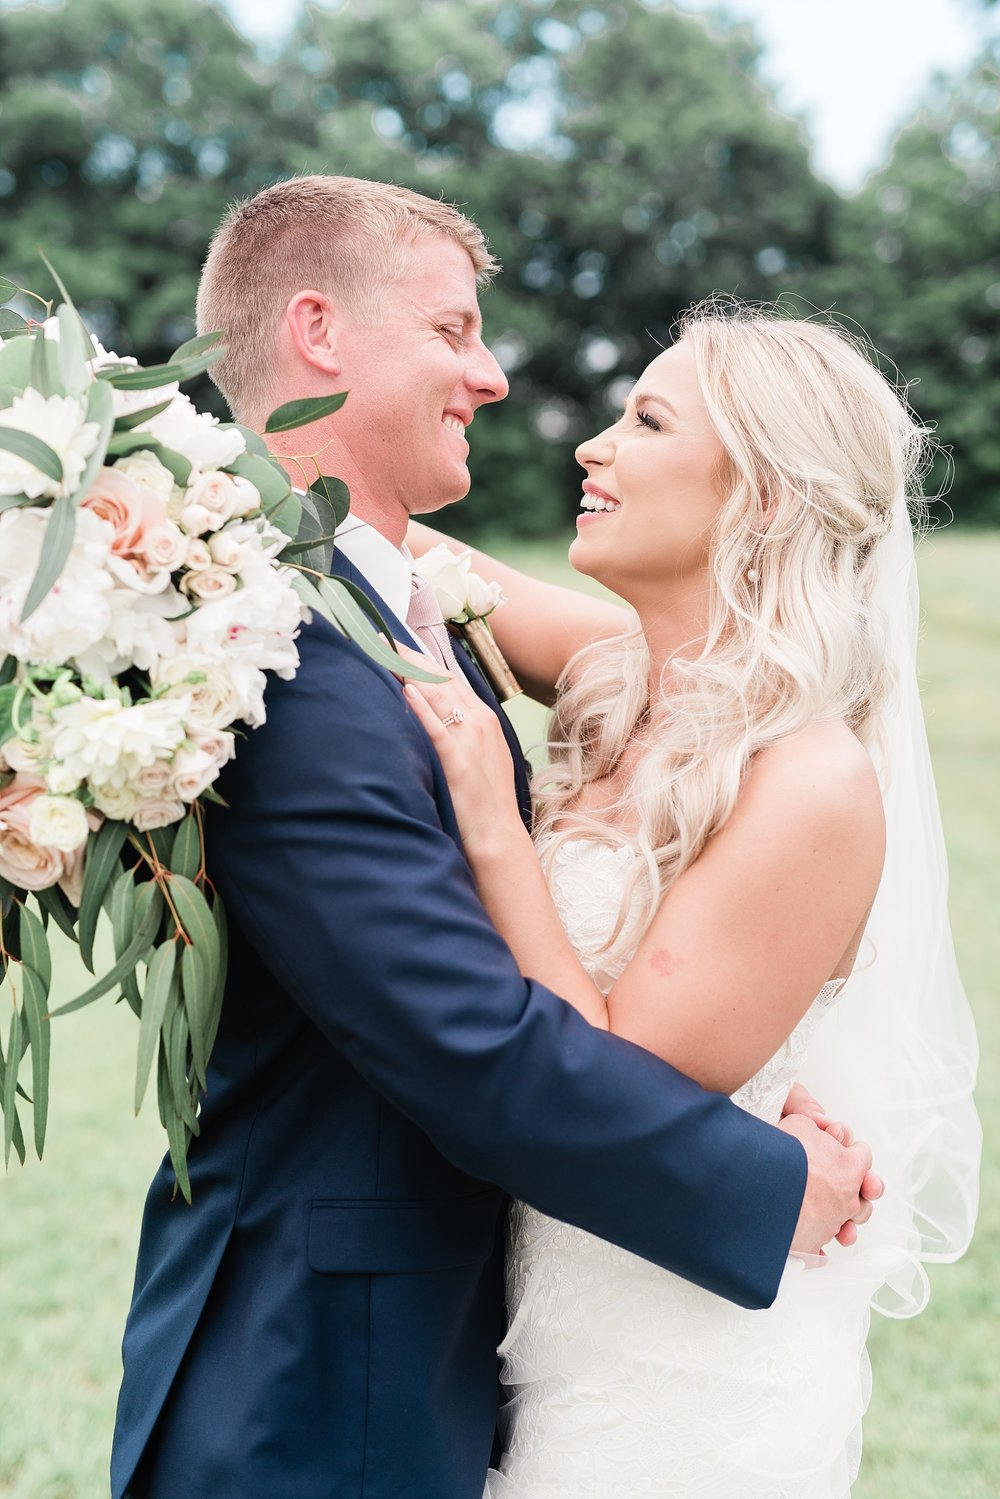 Stunning Heartfelt, Elegant, Fine Art, Chic, Outdoor Spring Wedding with Blush, Cream, Greenery, Rose Gold, and Sequins at Emerson Fields Venue by Kelsi Kliethermes Photography_0058.jpg